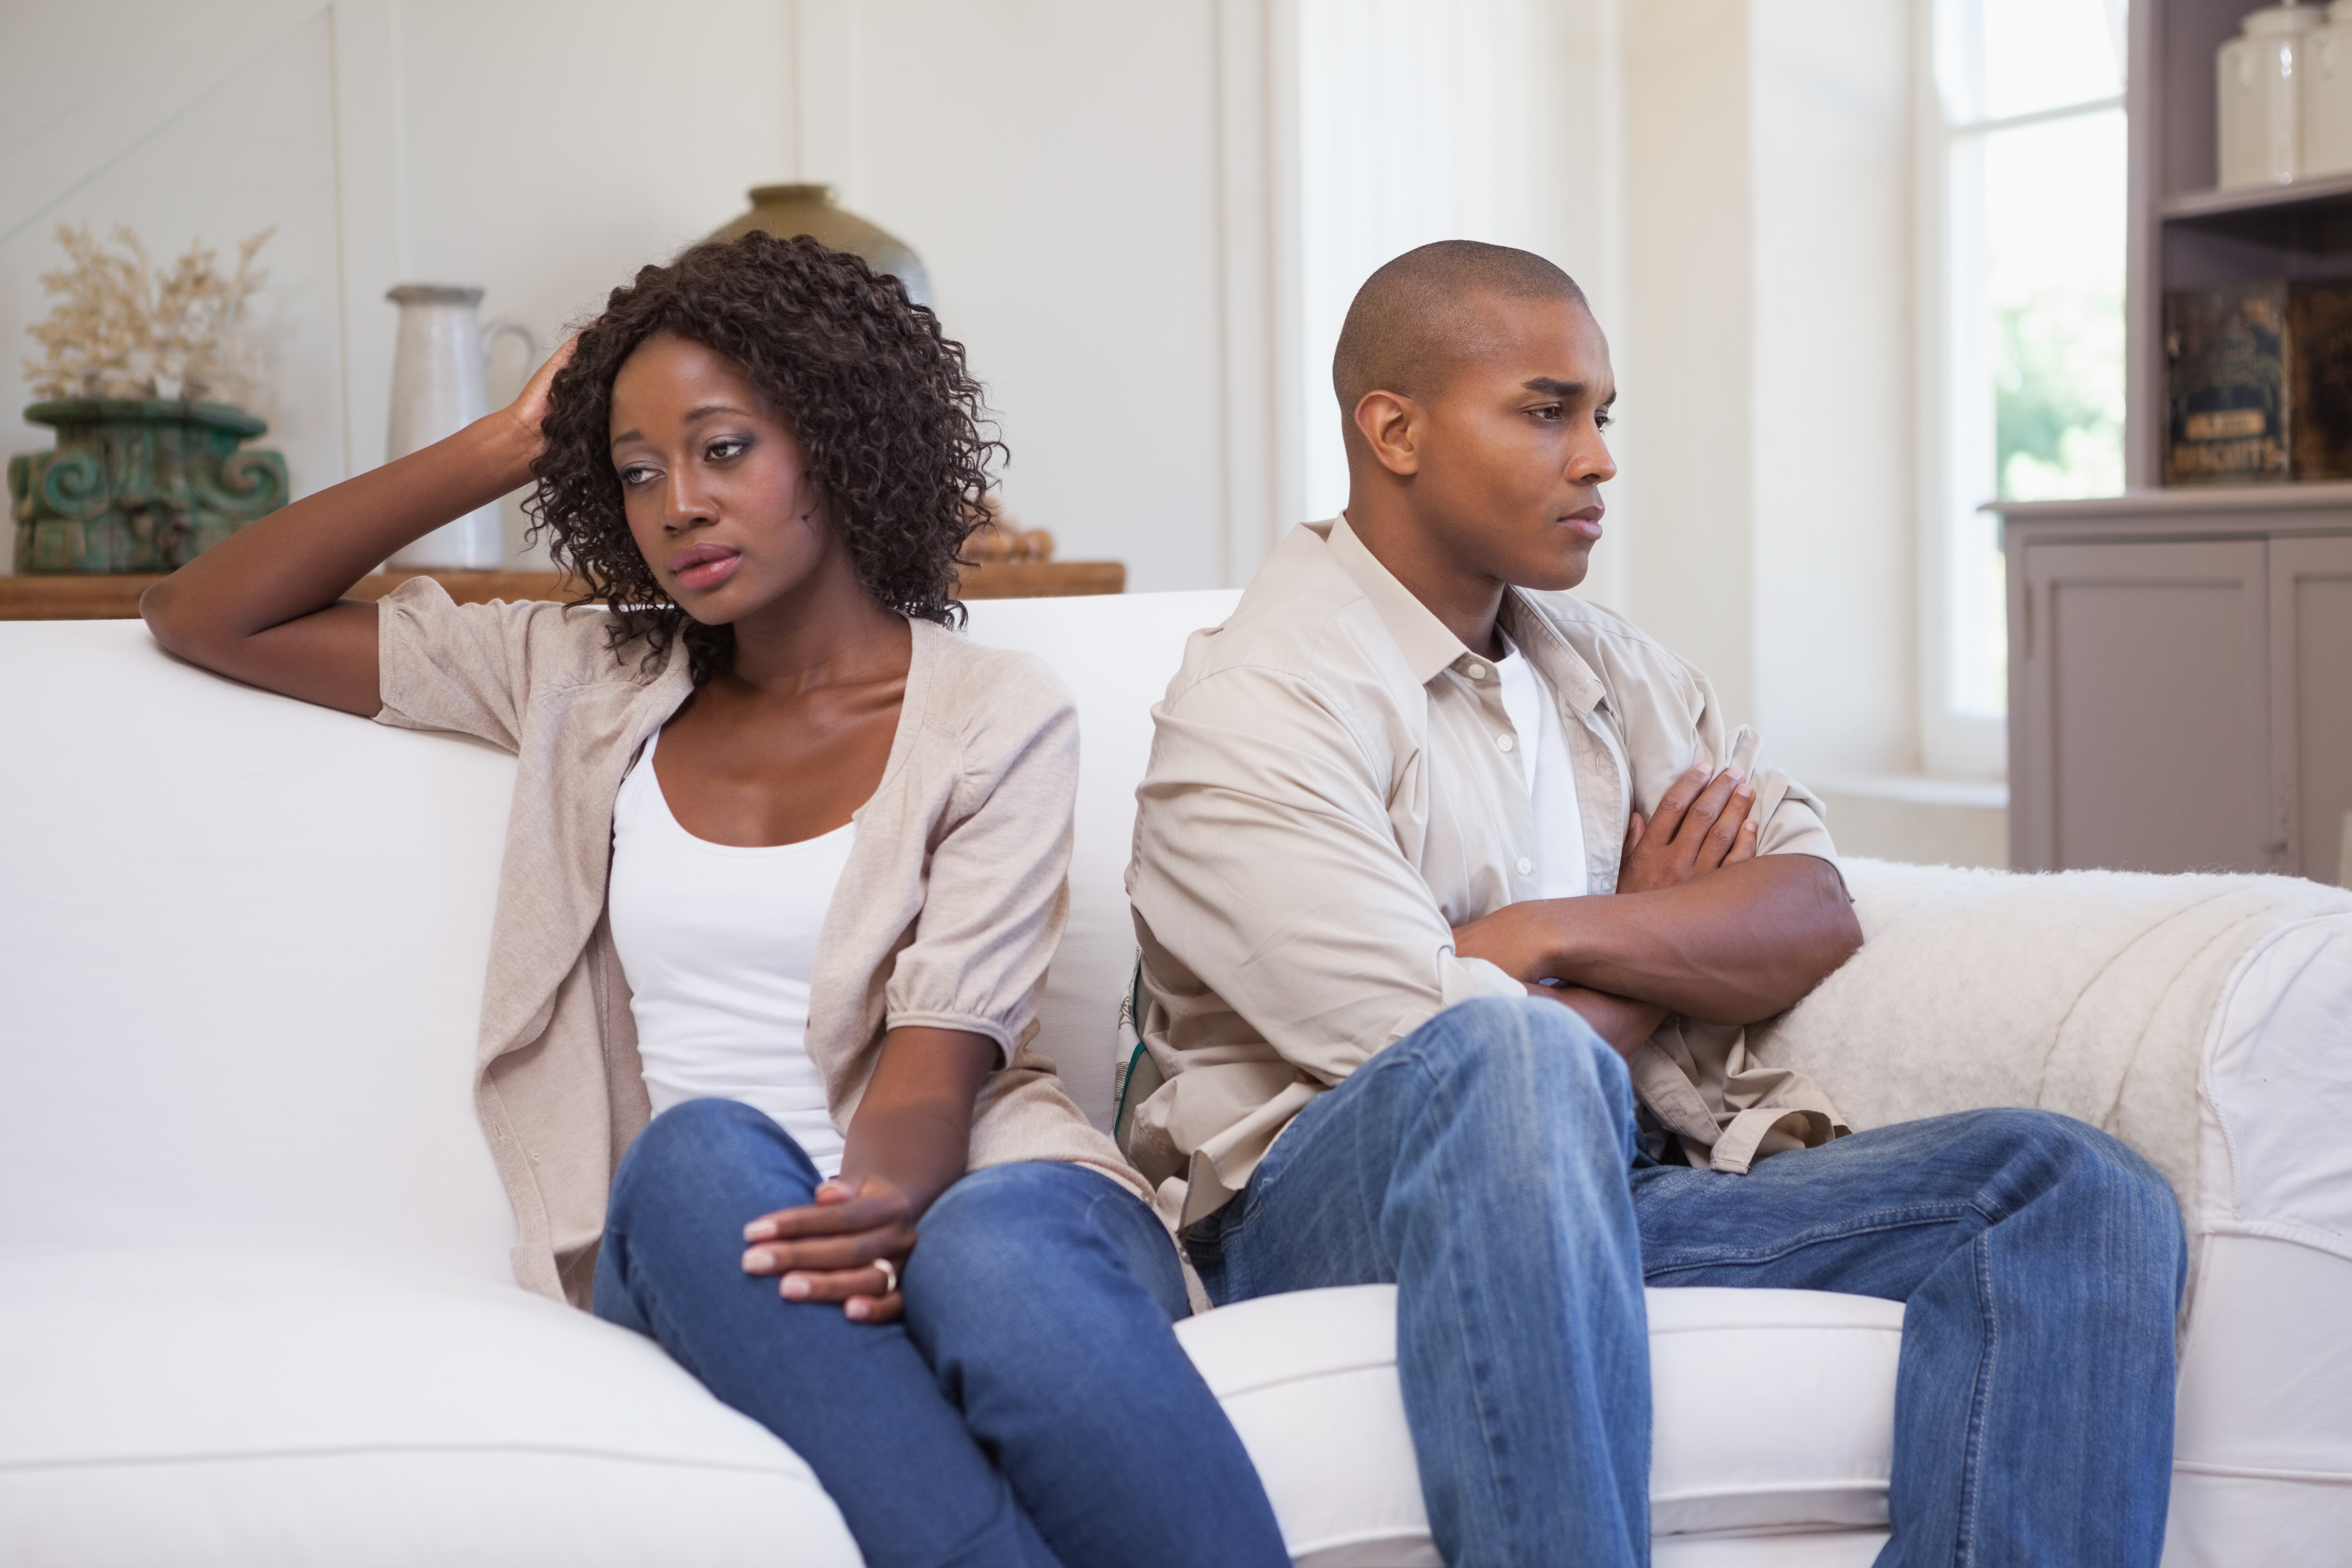 Unhappy couple, couple counselling, marriage counselling, relationships